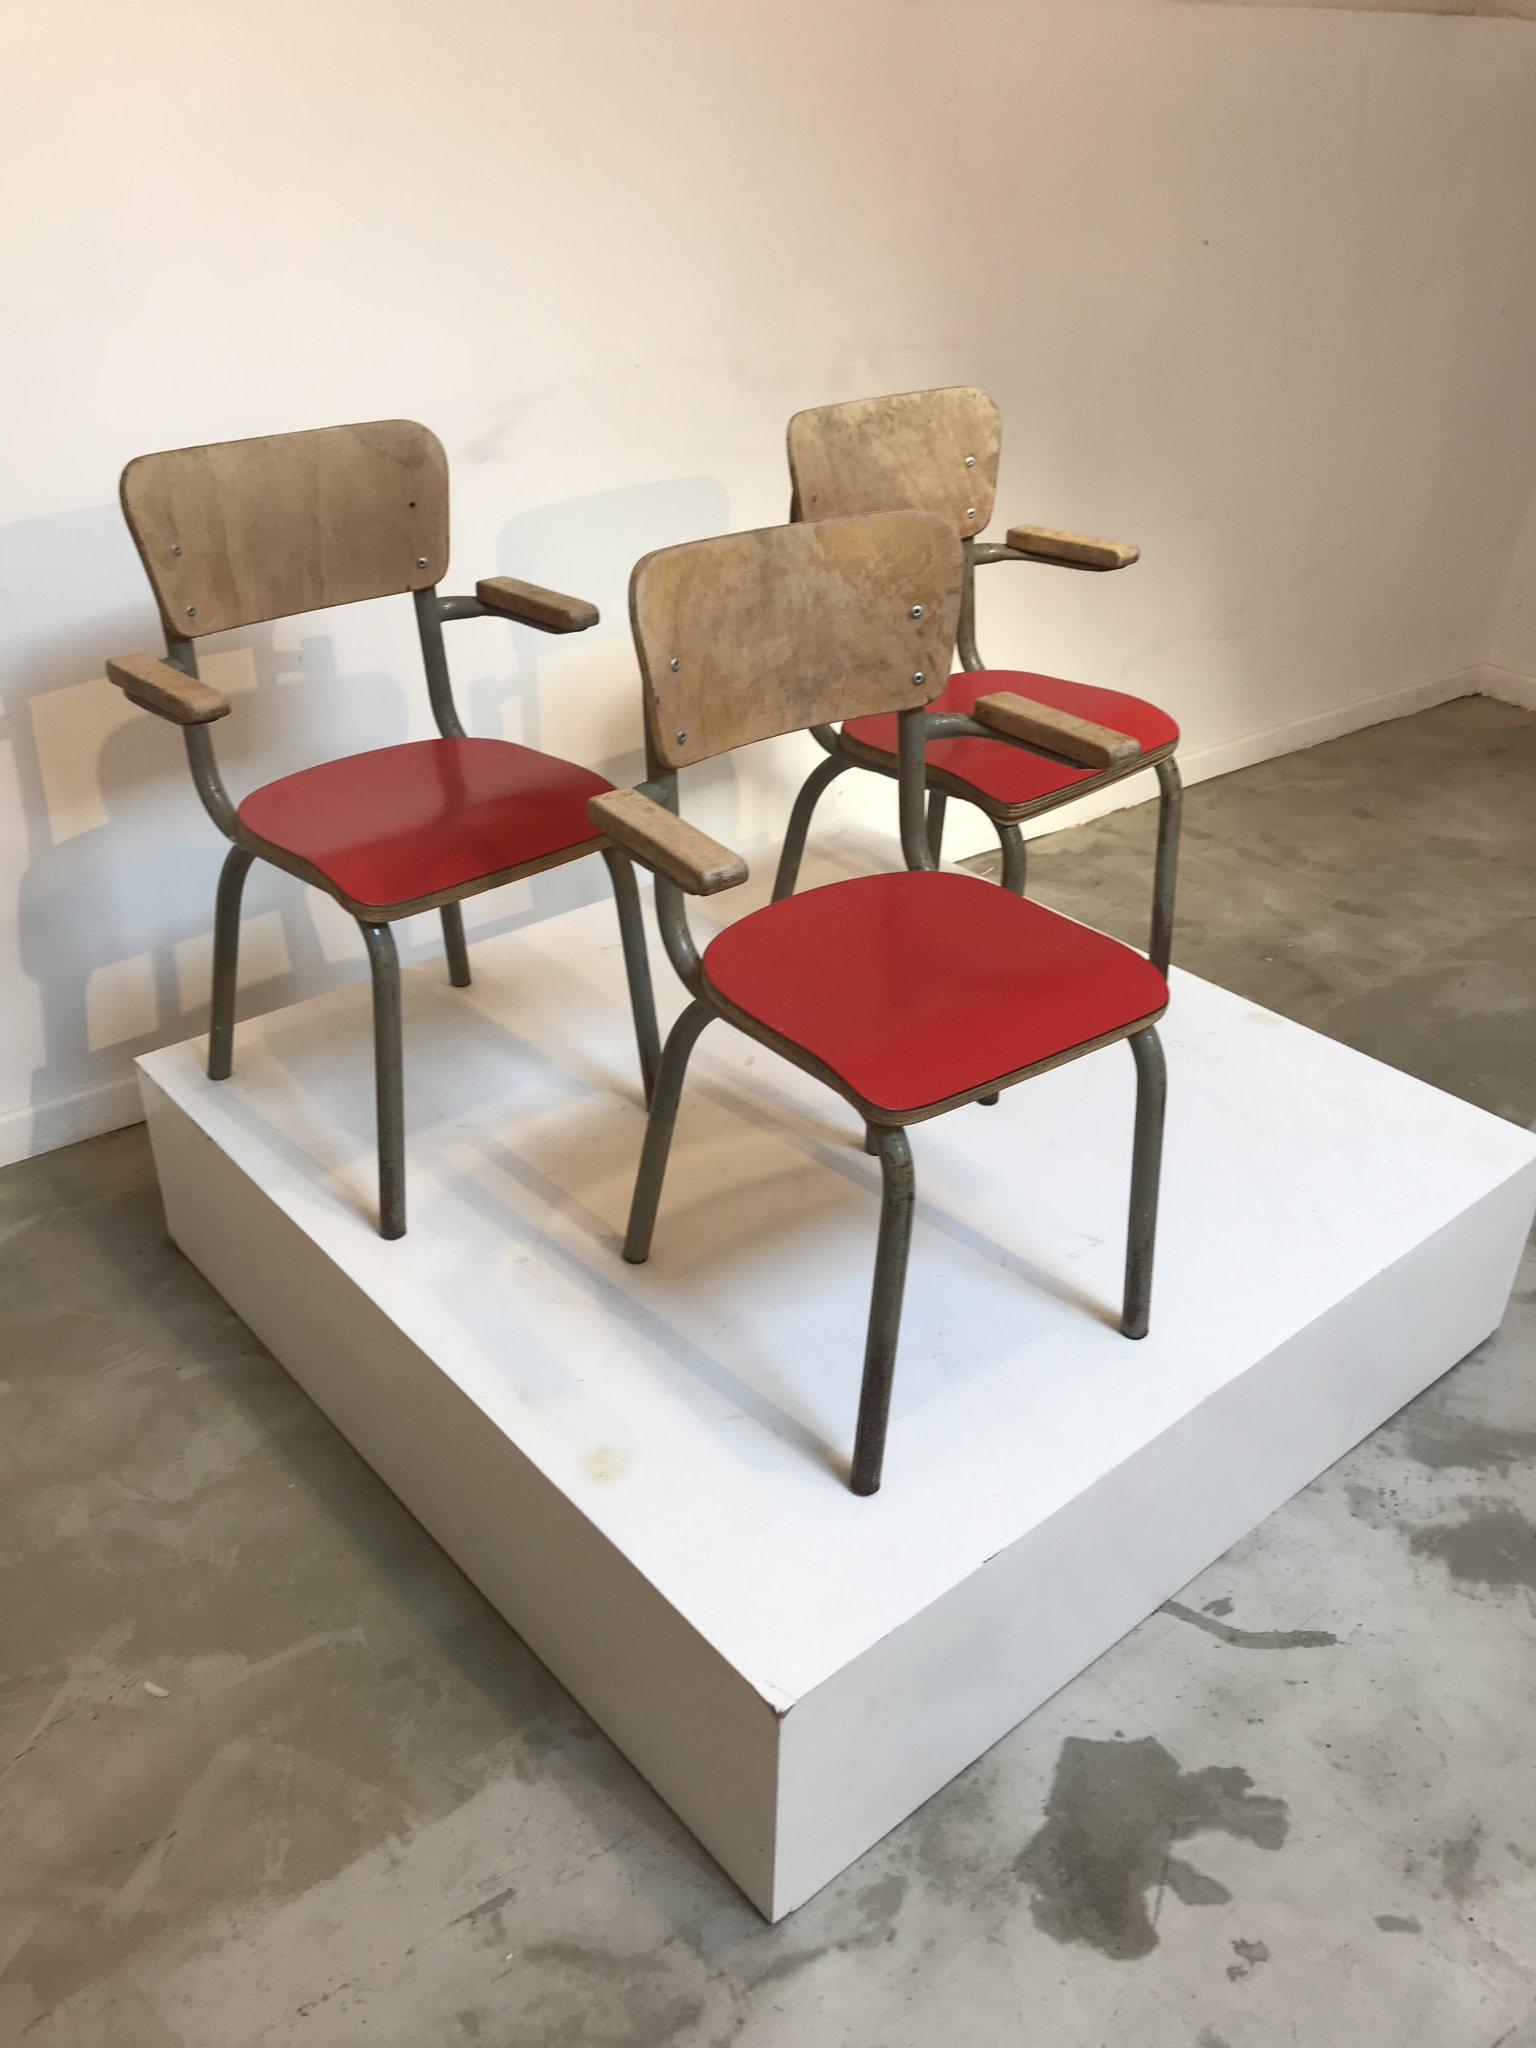 3 red chairs for kids